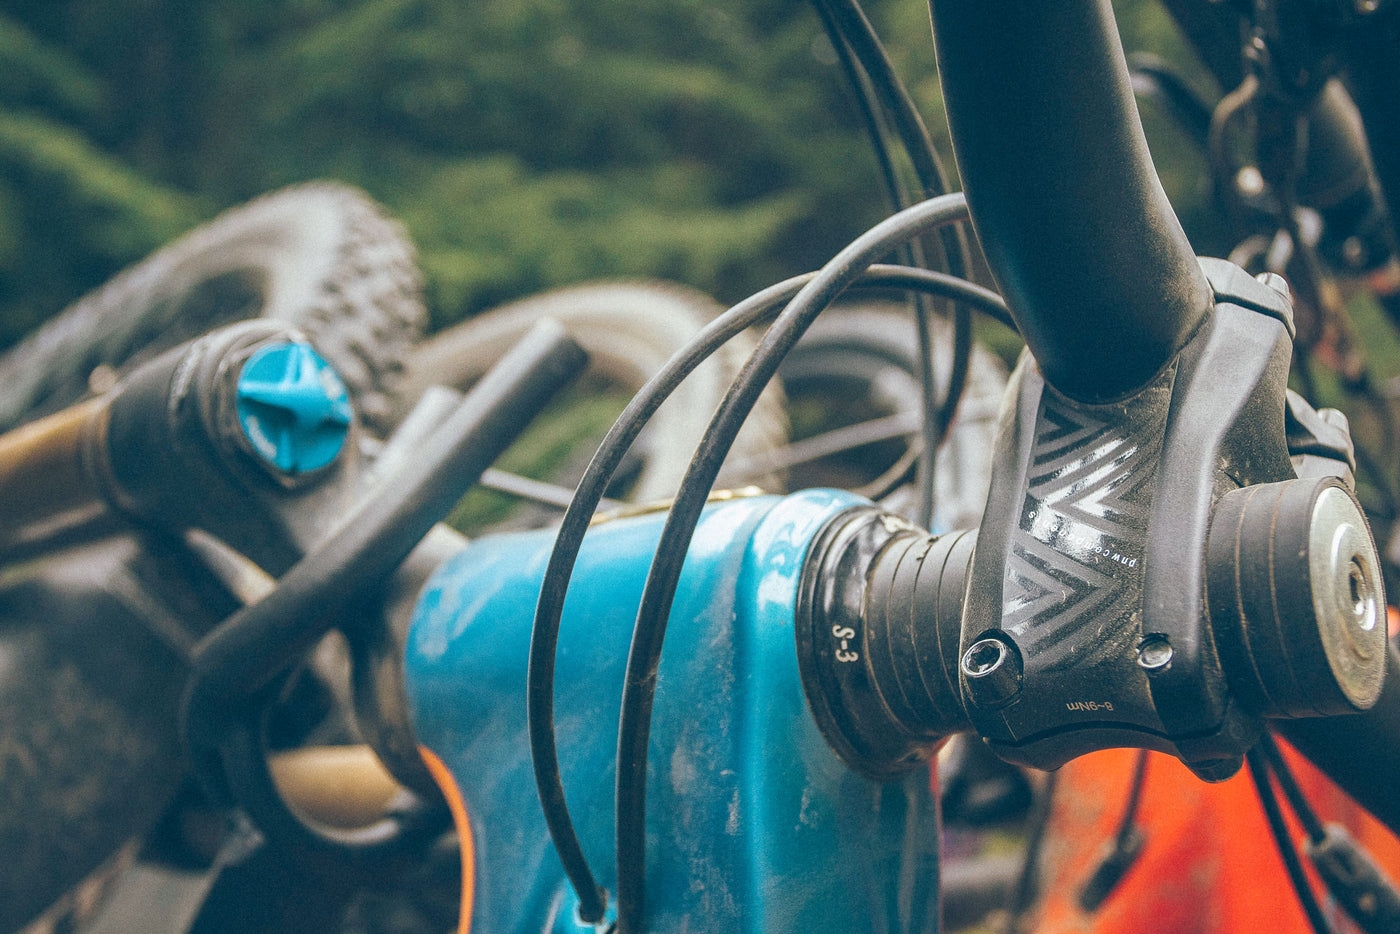 MOUNTAIN BIKE ACTION RANGE STEM REVIEW